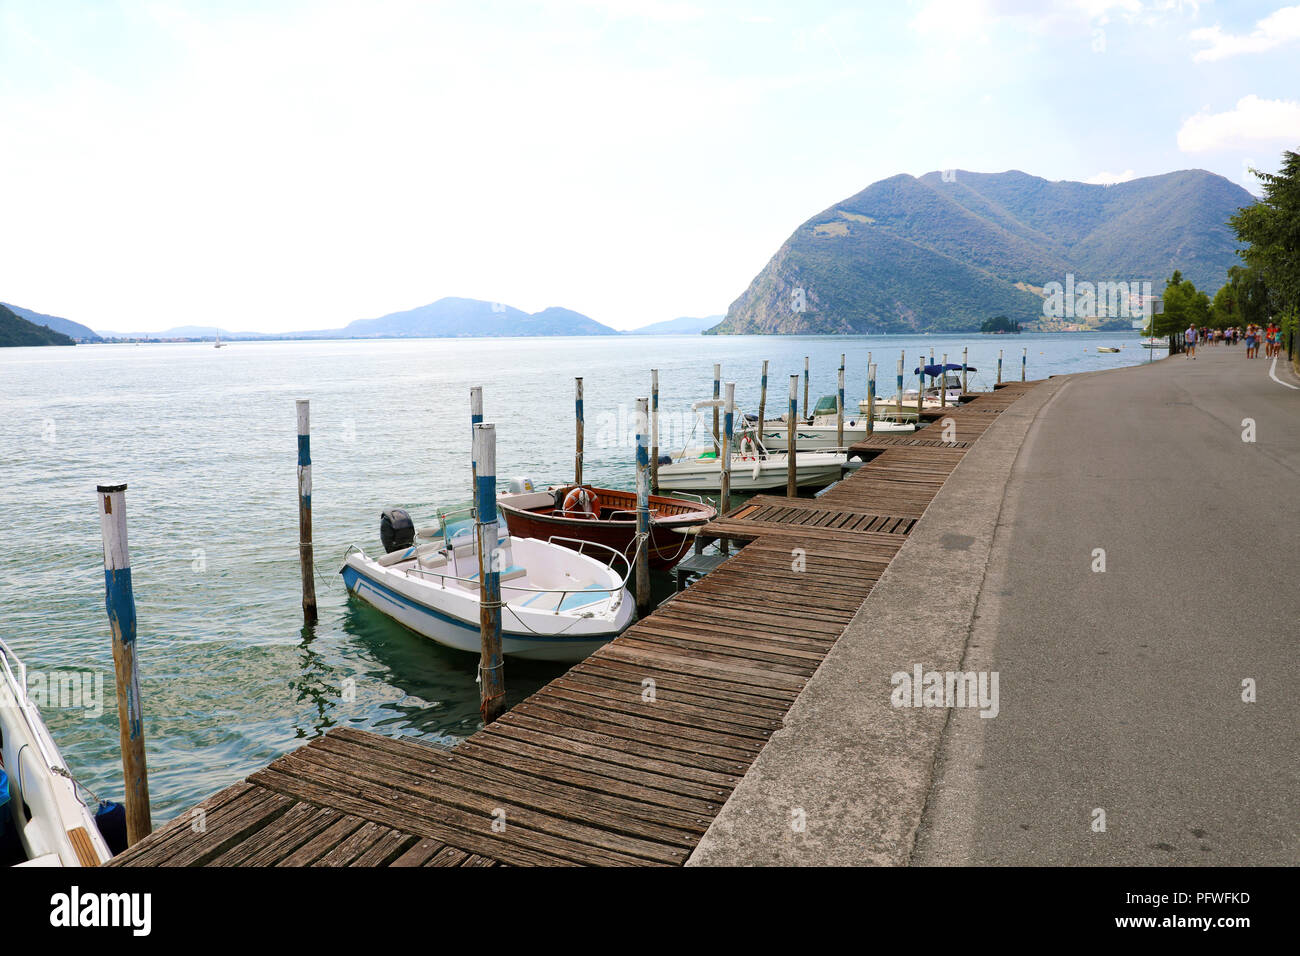 Boats moored in Peschiera Maraglio with Lake Iseo on the background, Monte Isola, Italy - Stock Image